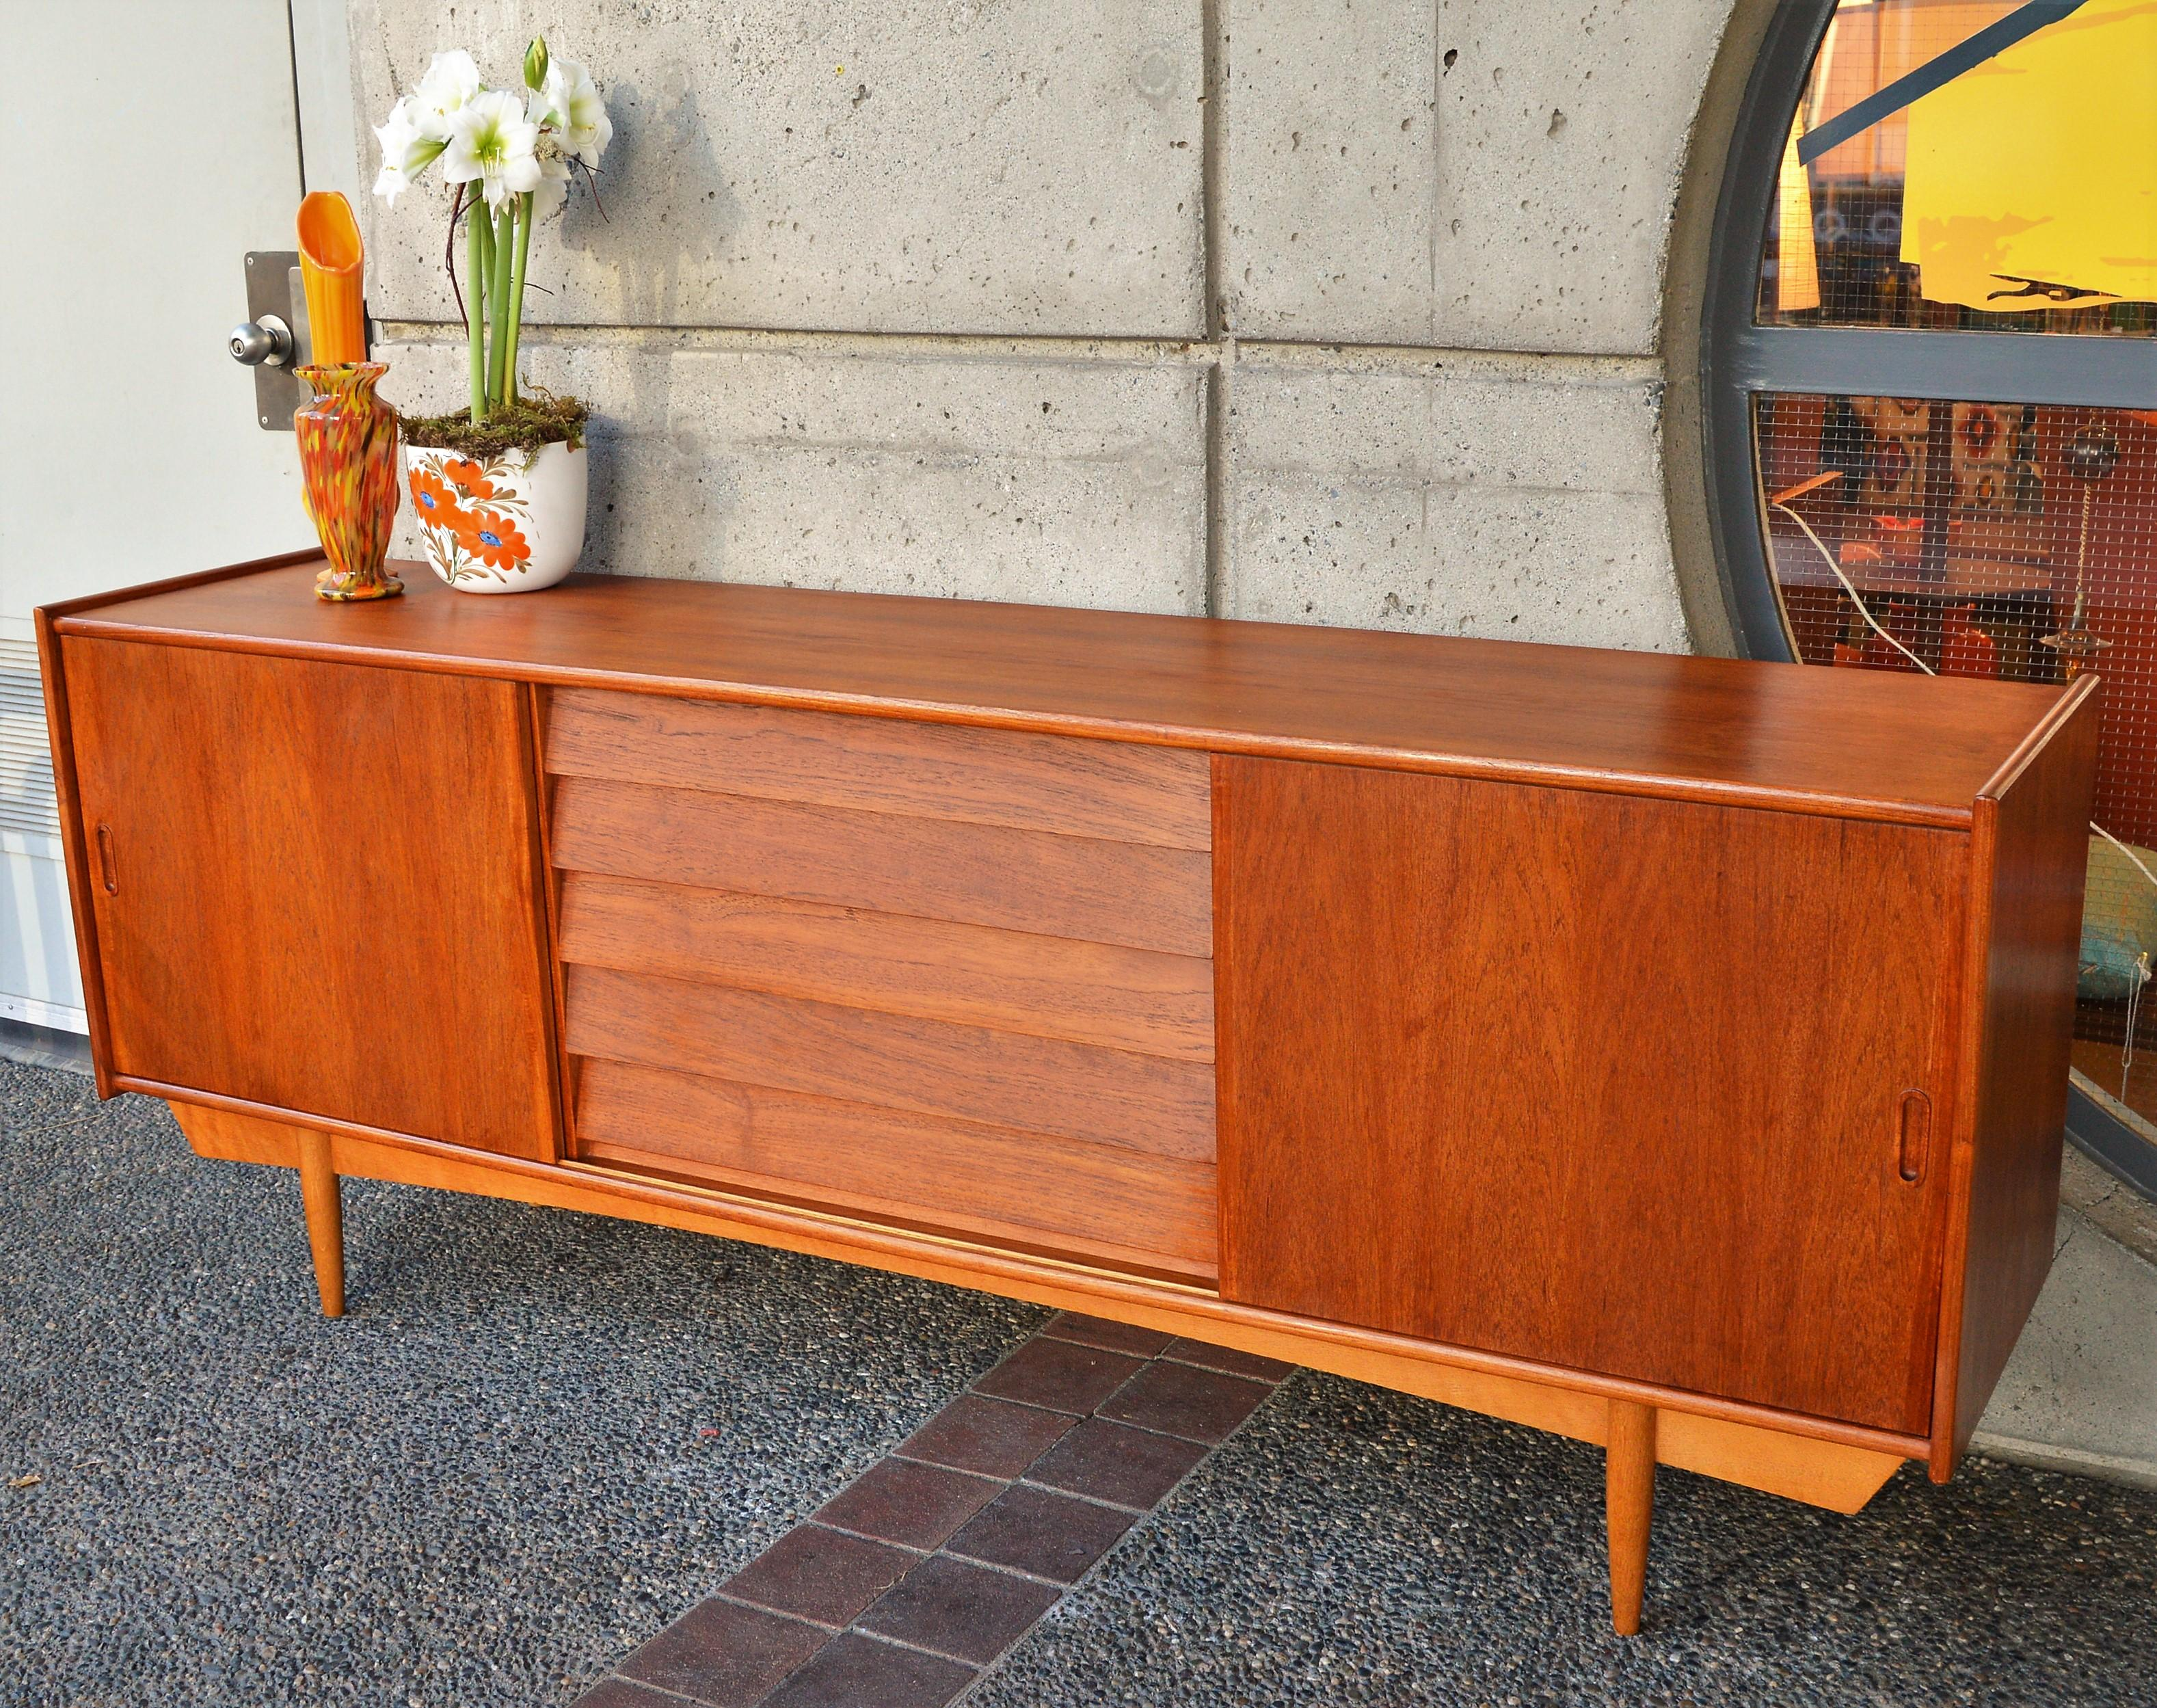 Danish Style Credenza : Danish style credenza custom built from recycled wood ecaytrade